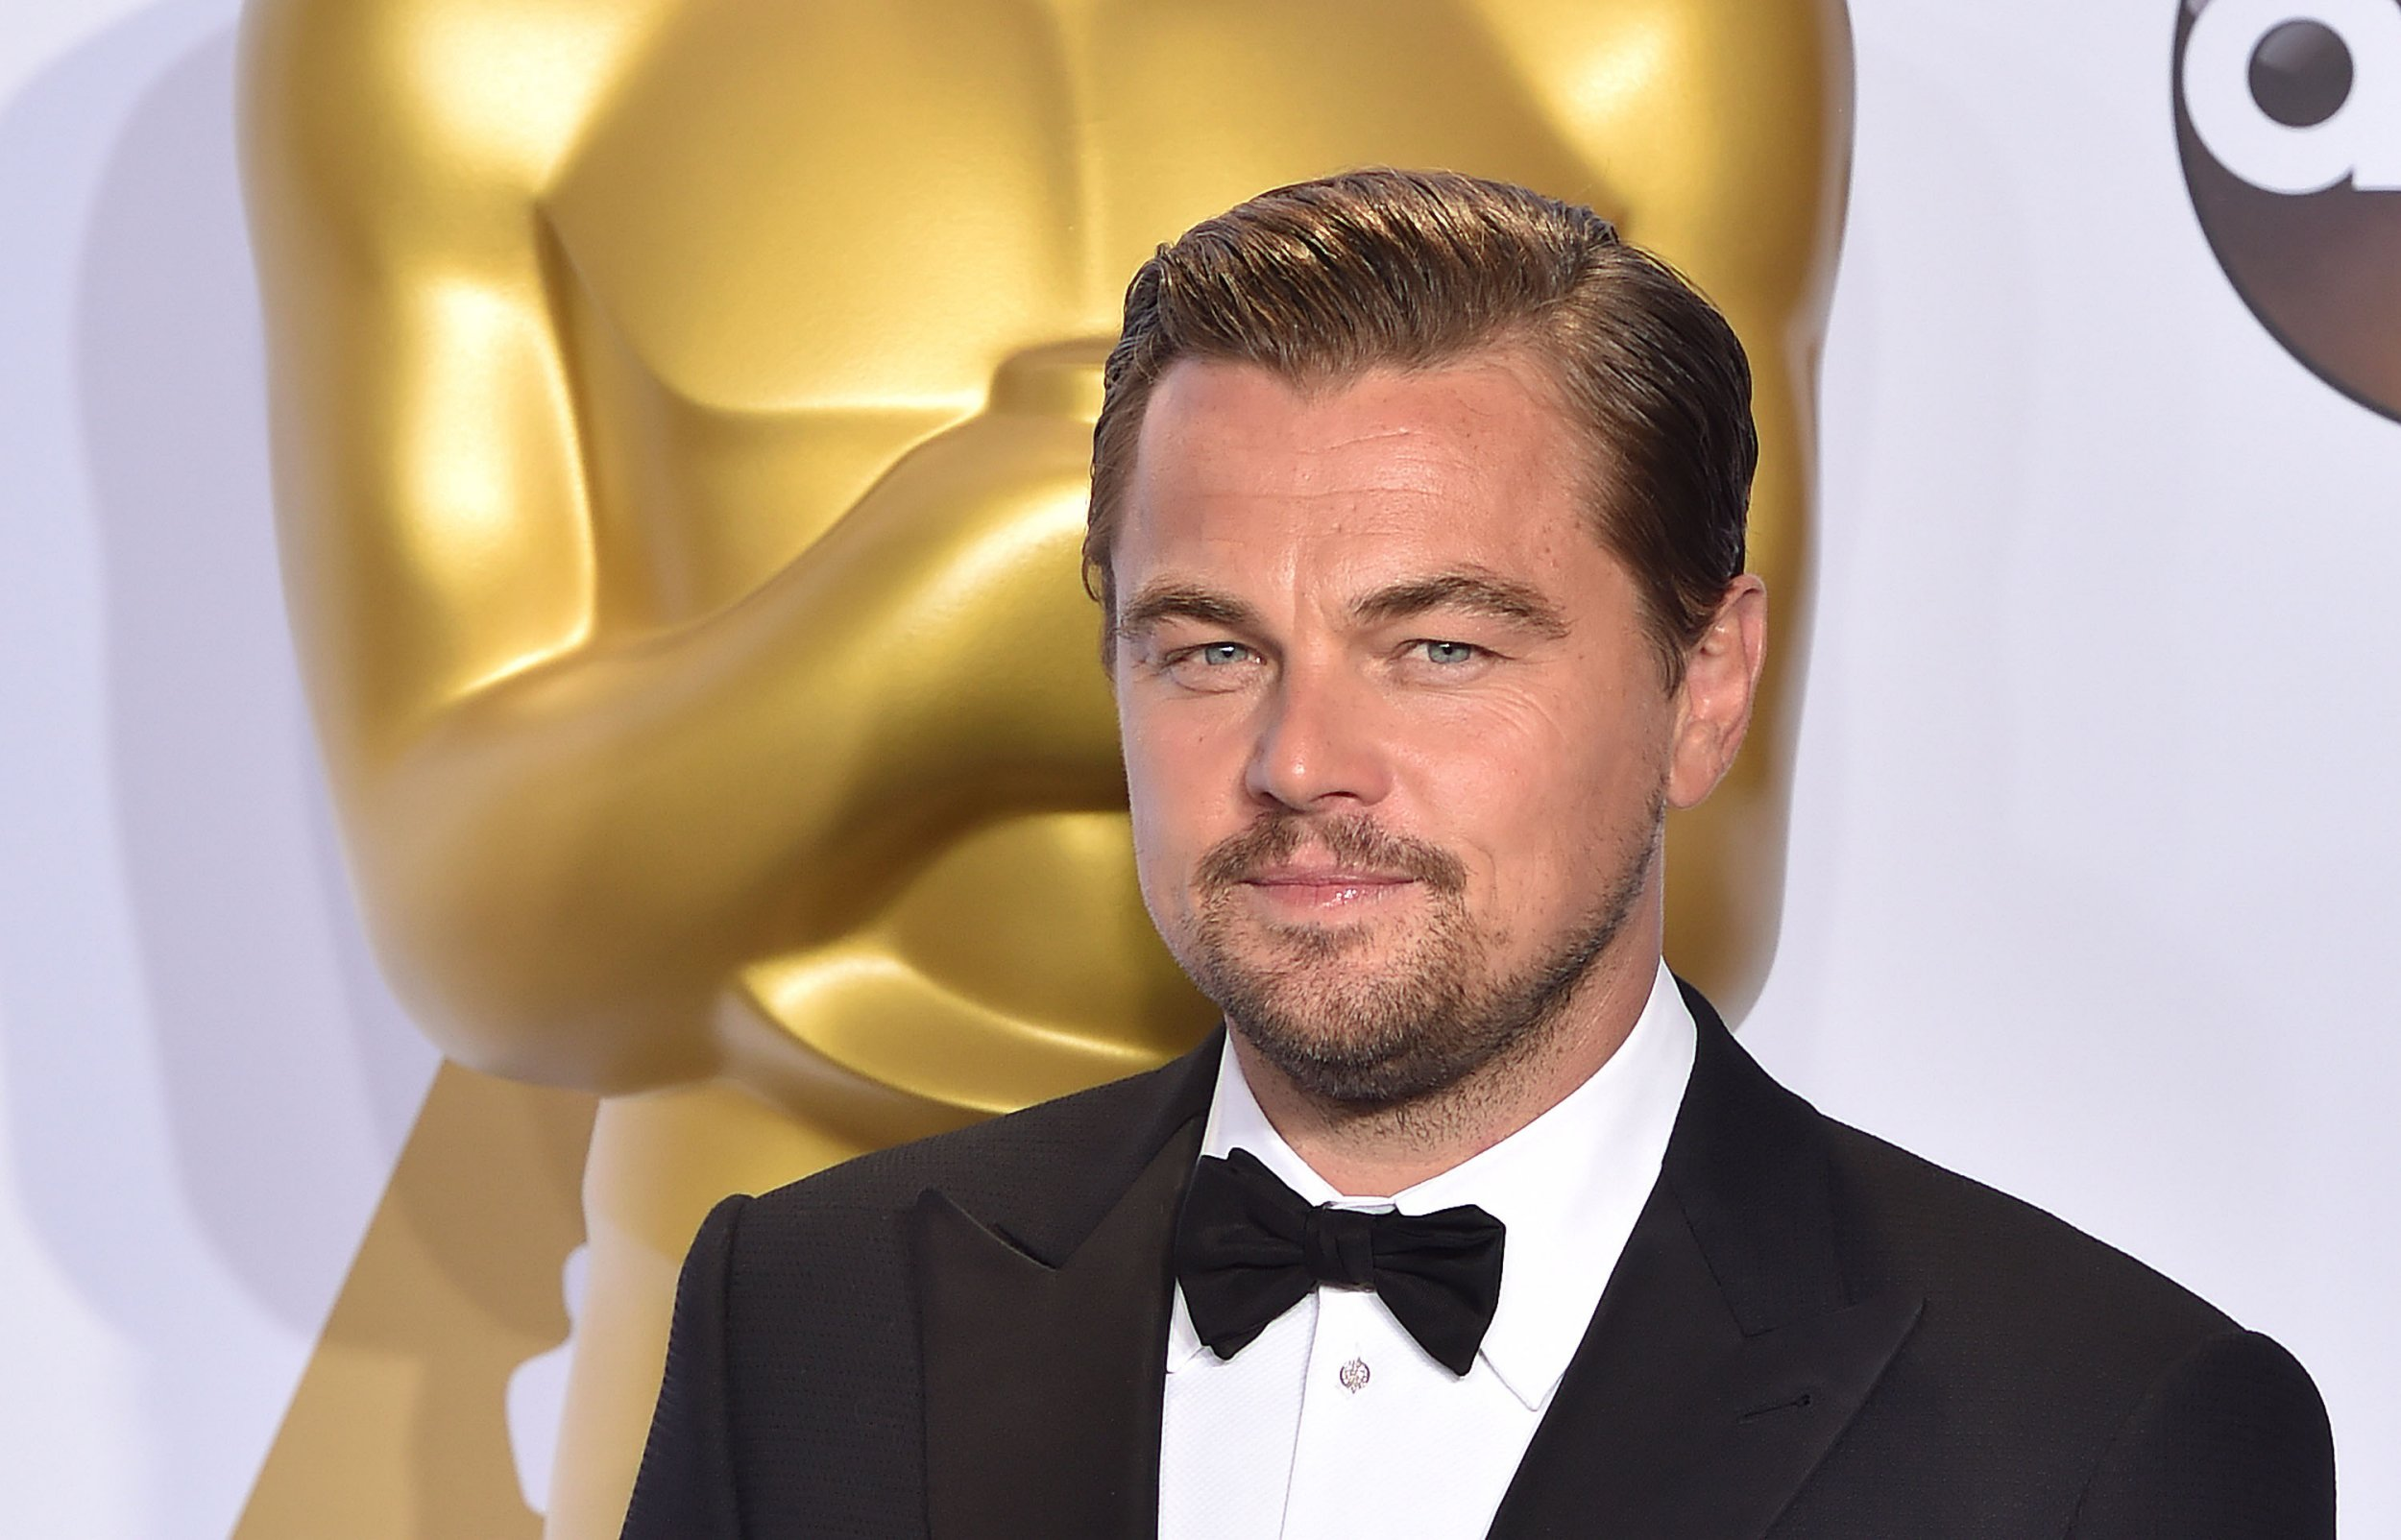 Leonardo DiCaprio is heading to Edinburgh and he's looking for a lunch buddy